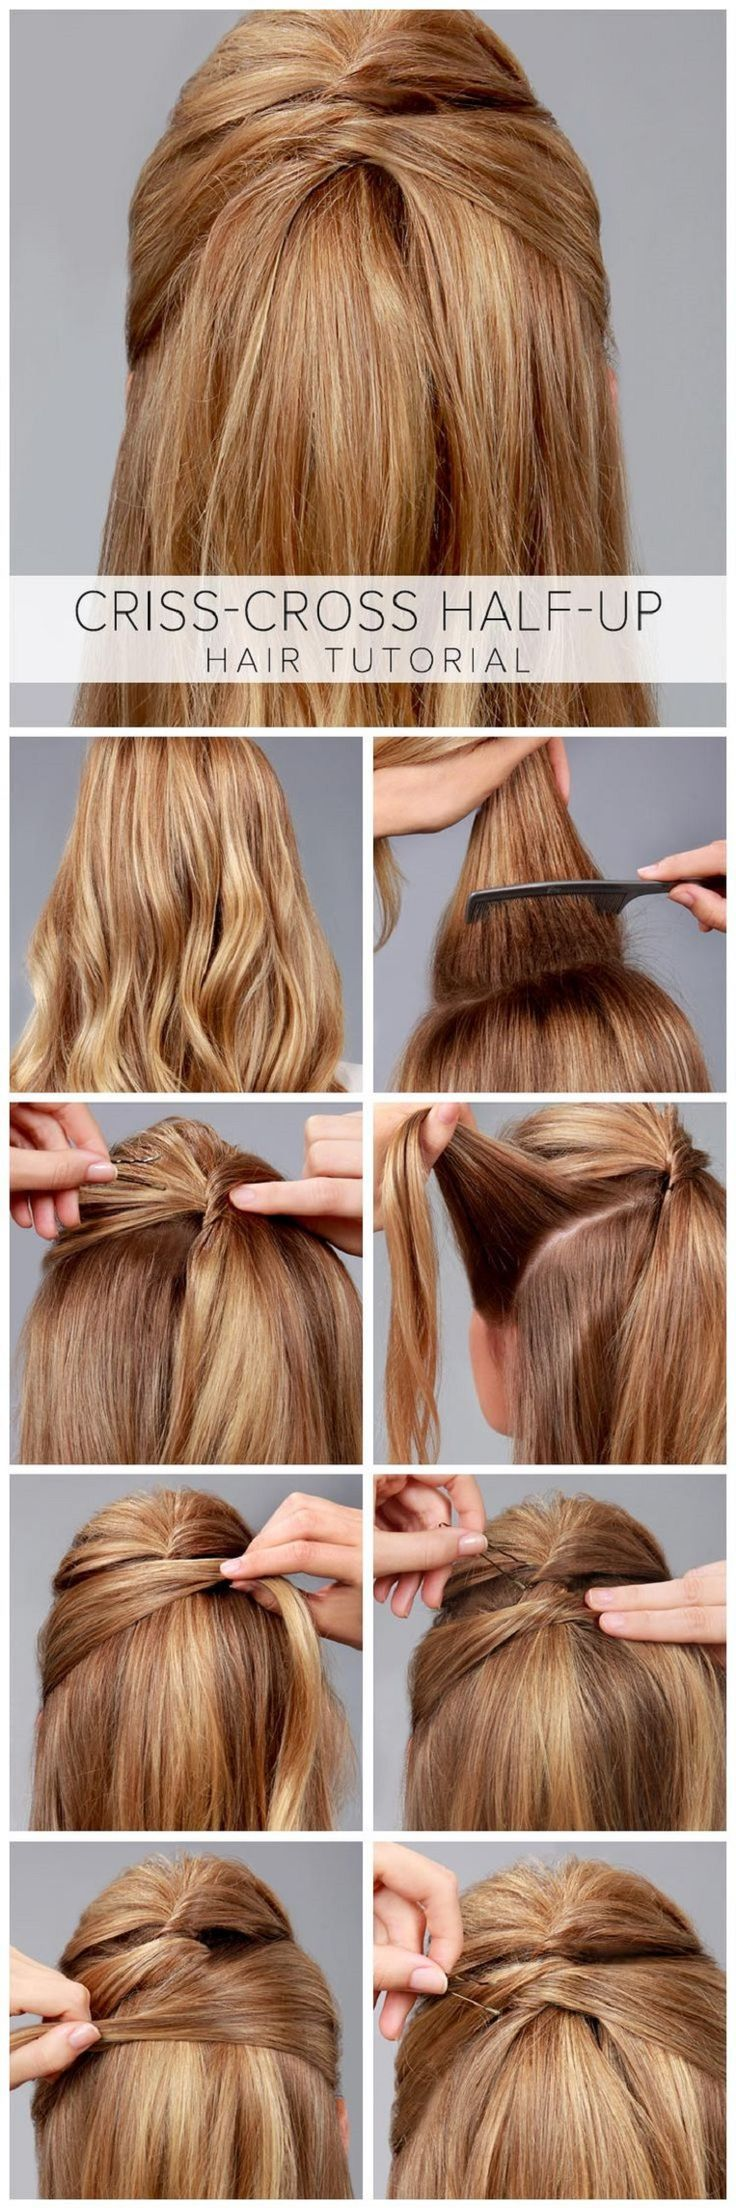 Criss-Cross 3Half-Up 3Hair Tutorial